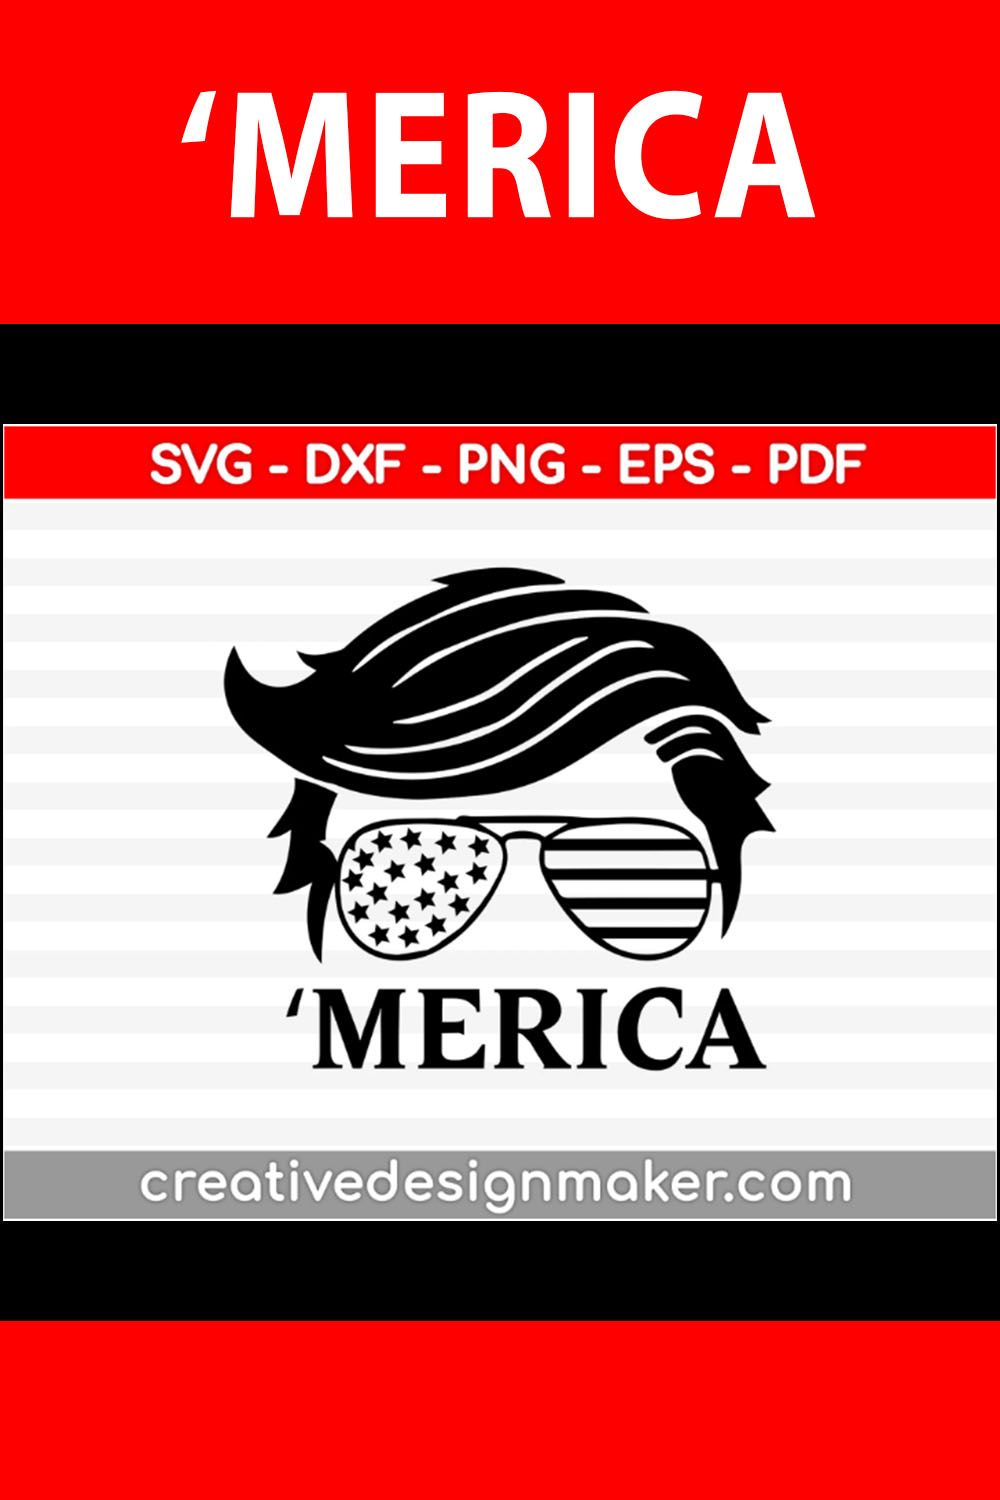 Trump Merica Trump 2020 Trump Hair Style Sunglasses American Flag Design Svg Dxf Png Eps Pdf File For Cameo And Printable Files In 2020 Flag Design Svg American Flag